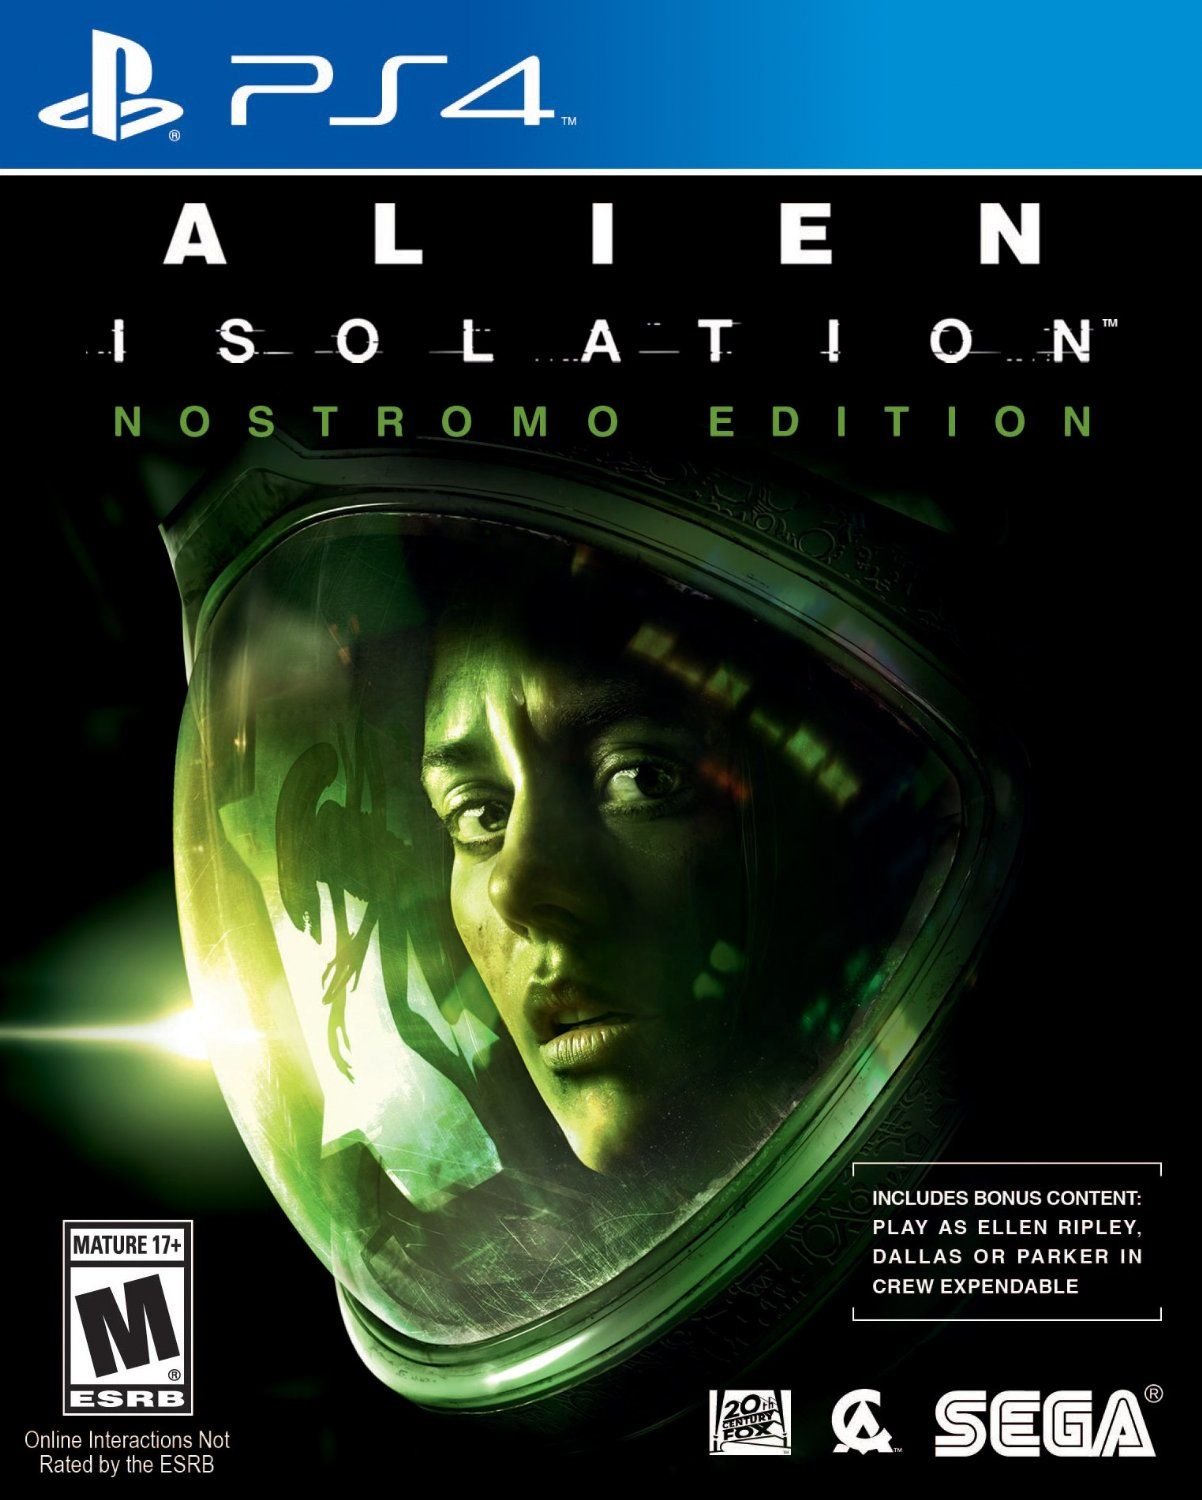 Alien Isolation for the ps4 (PreOrder) http//www.amazon